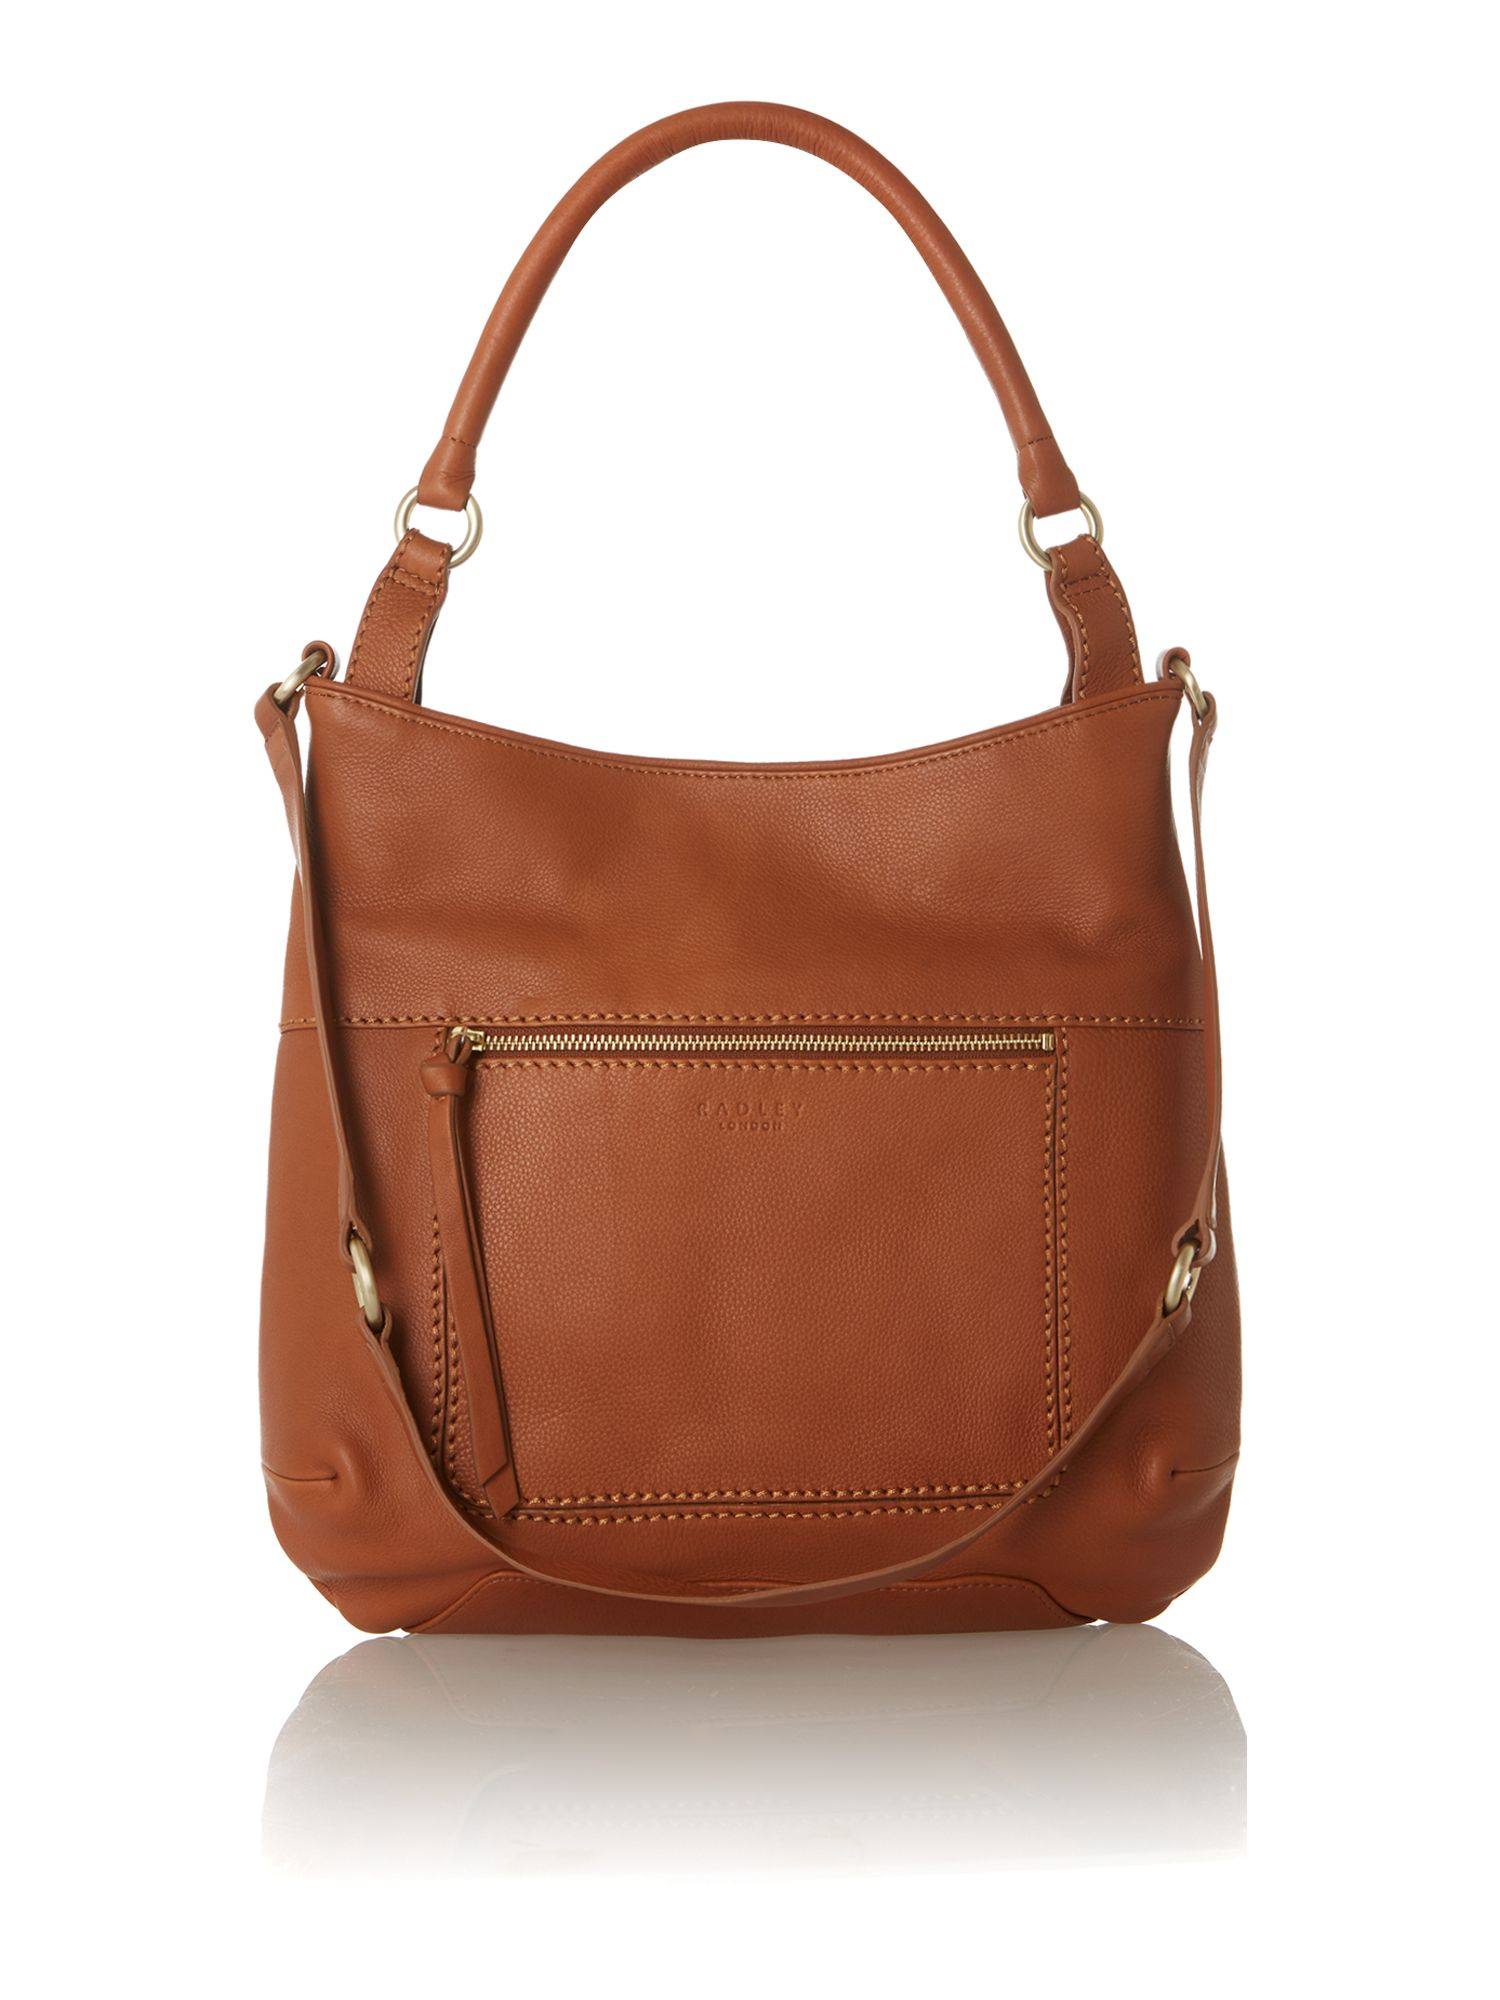 Radley Berkeley Tan Large Scoop Leather Hobo Bag in Brown | Lyst